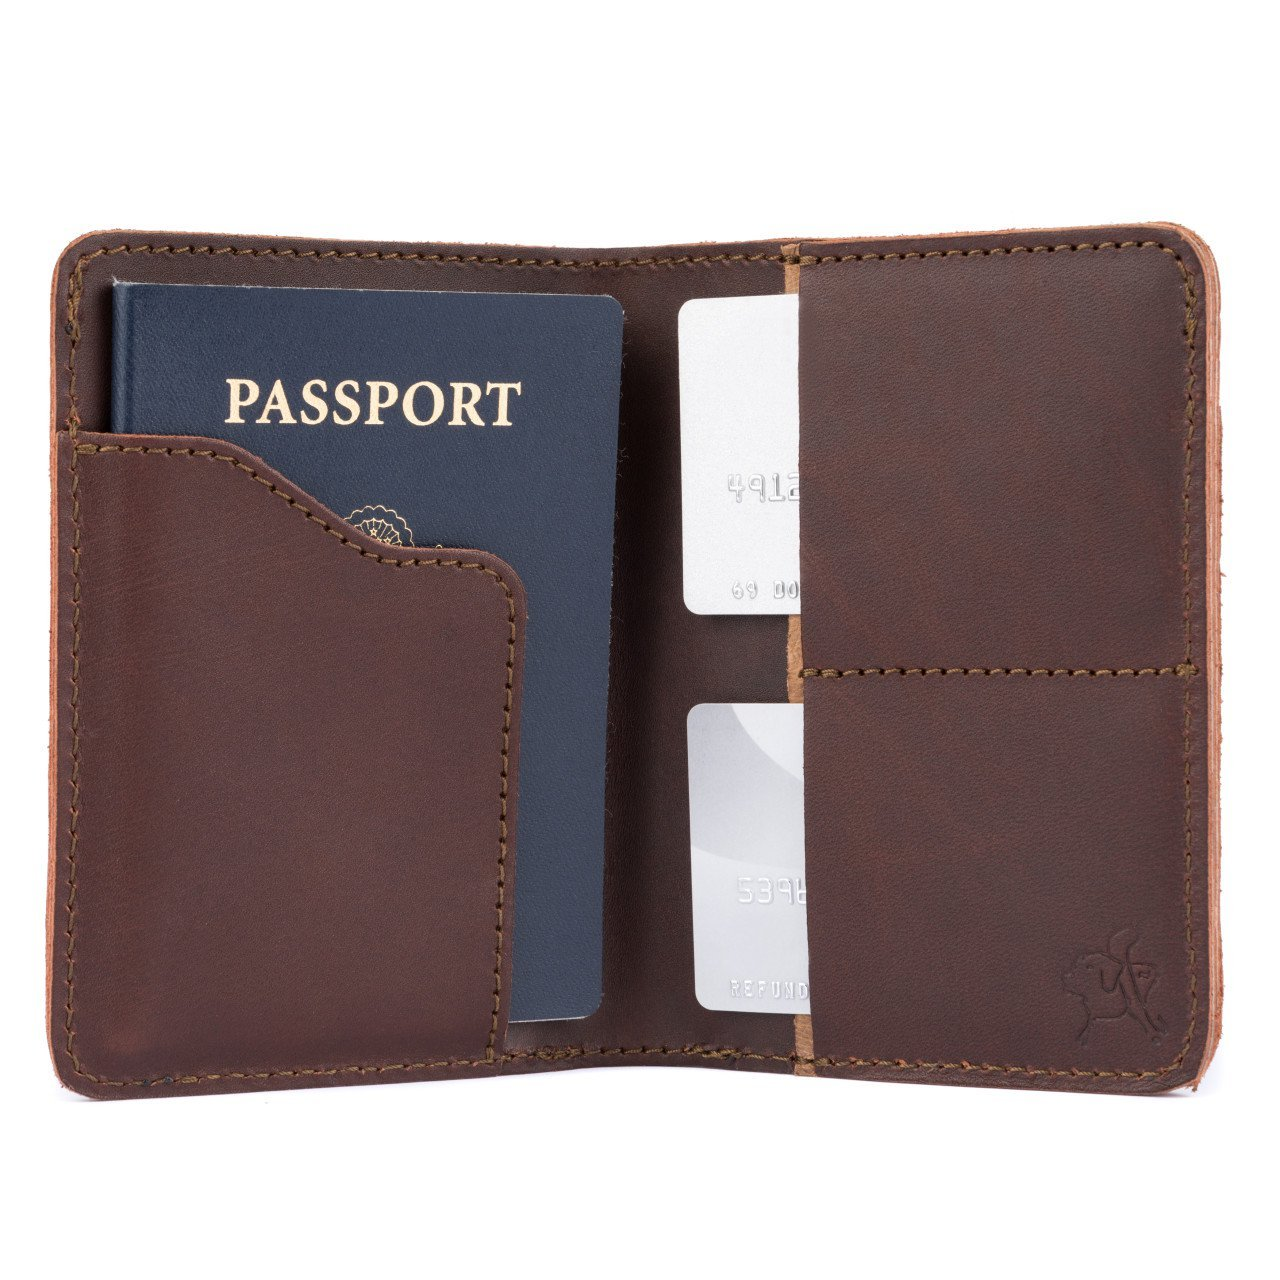 Saddleback Leather Passport Wallet - 100% Full Grain Leather, RFID Blocking Passport Holder with 100 Year Warranty